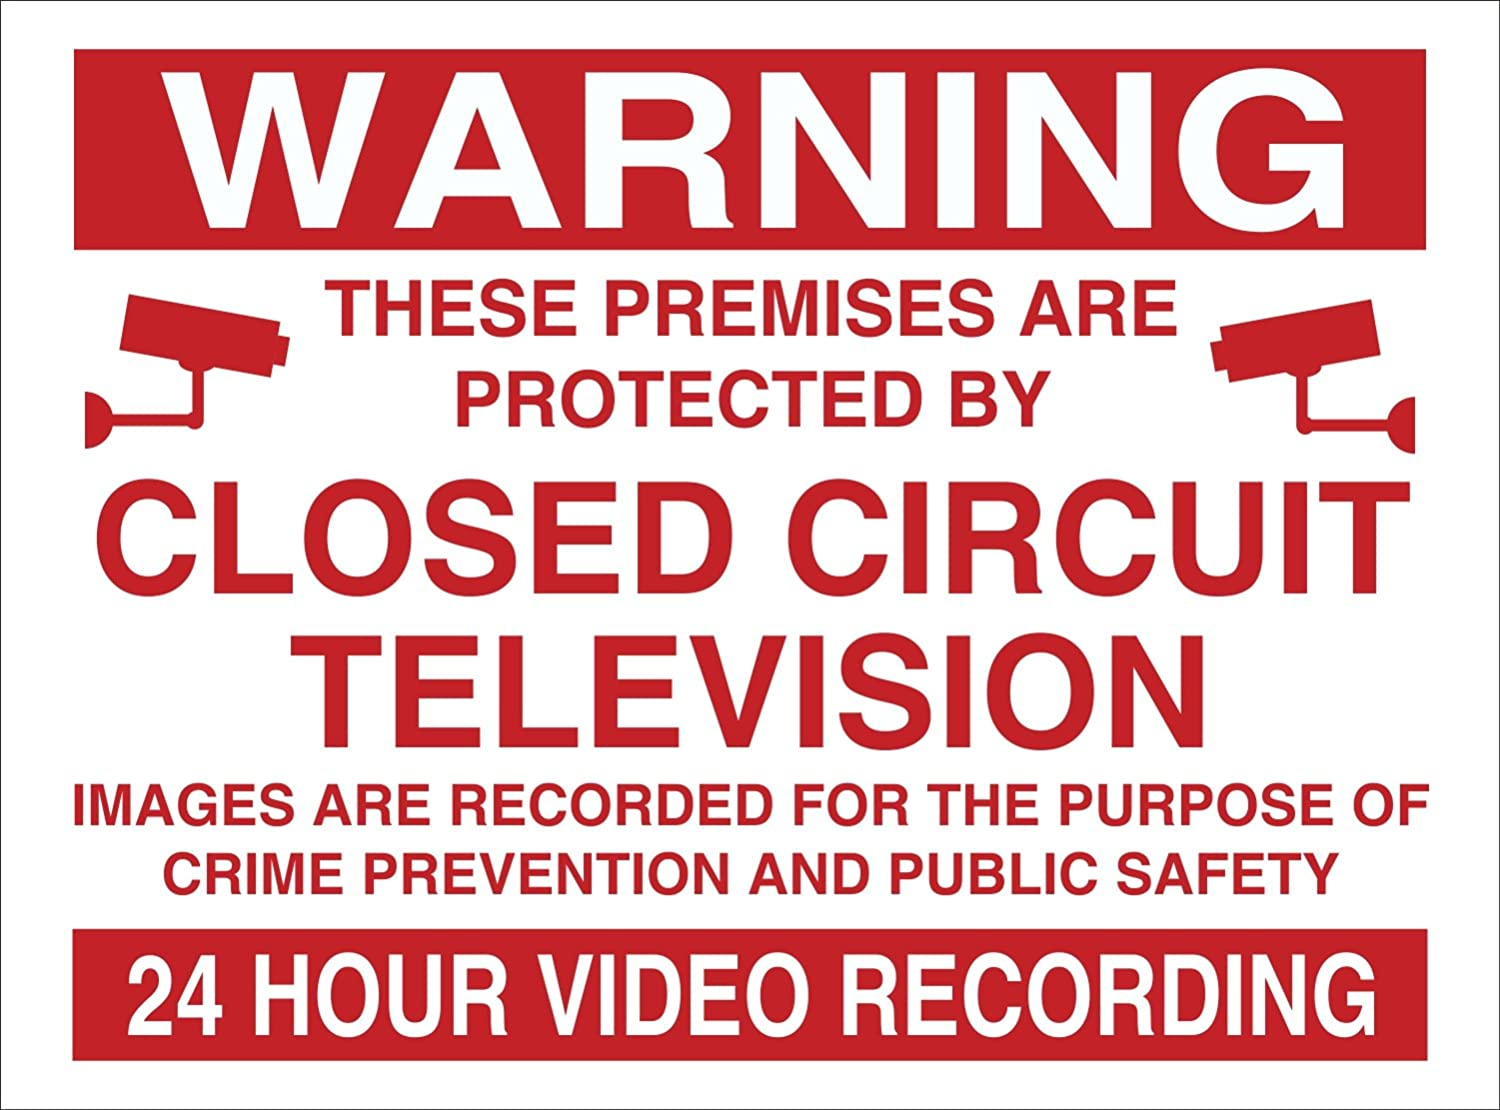 WARNING 24HR VIDEO RECORDING SIGN RIGID PLASTIC PRINTED. 200MMx150MM WOOTTON INDUSTRIES LIMITED CCTV24VID